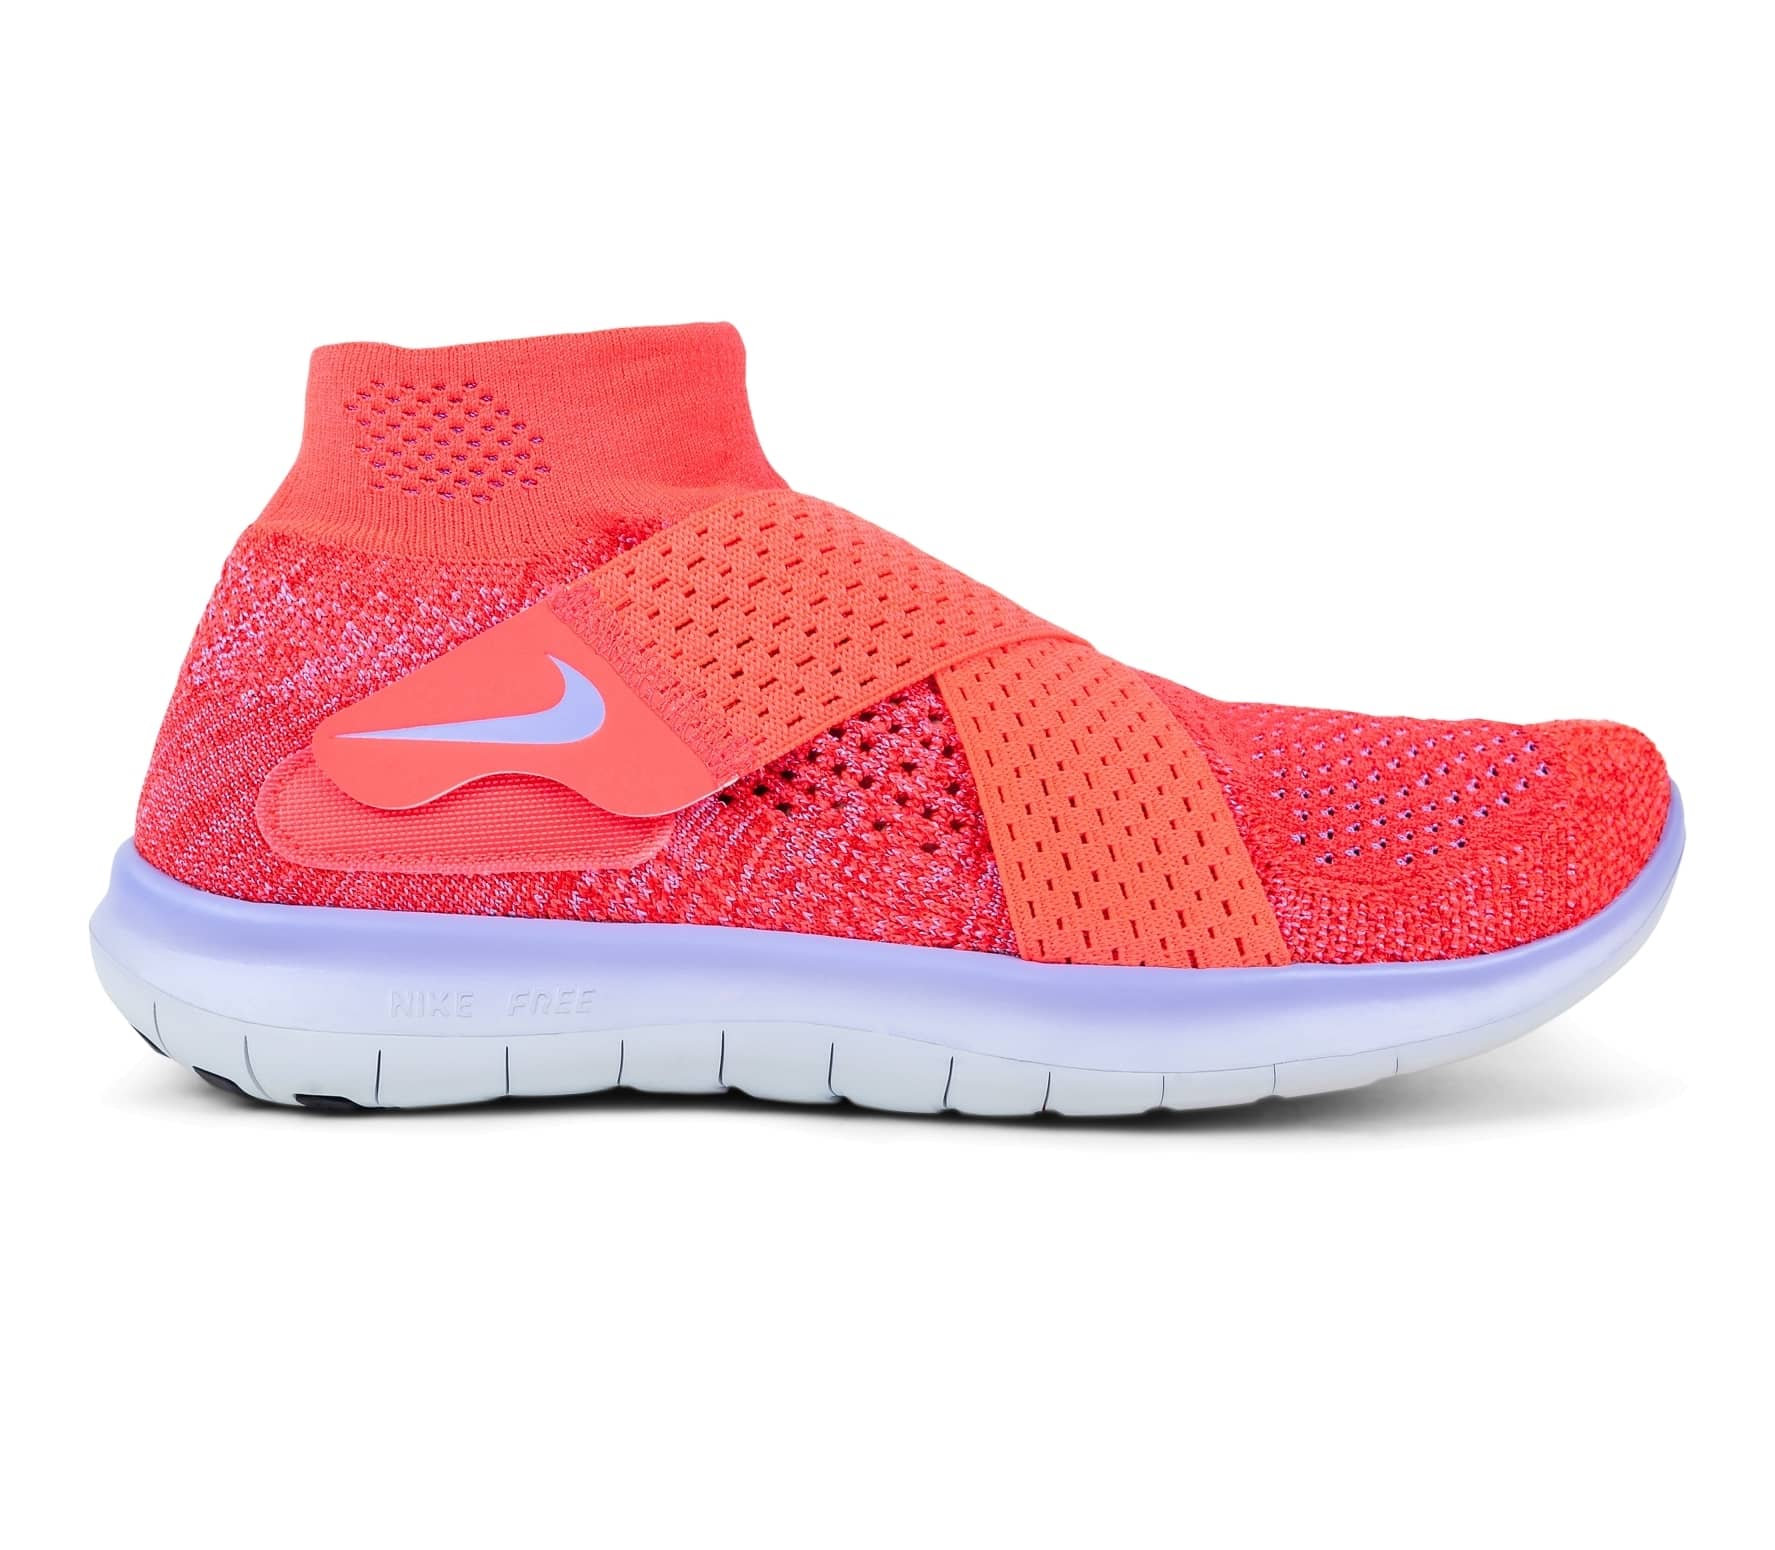 detailed look d02ee 72c53 Nike - Free RN Motion Flyknit 2017 zapatillas de running para mujer (rosa)